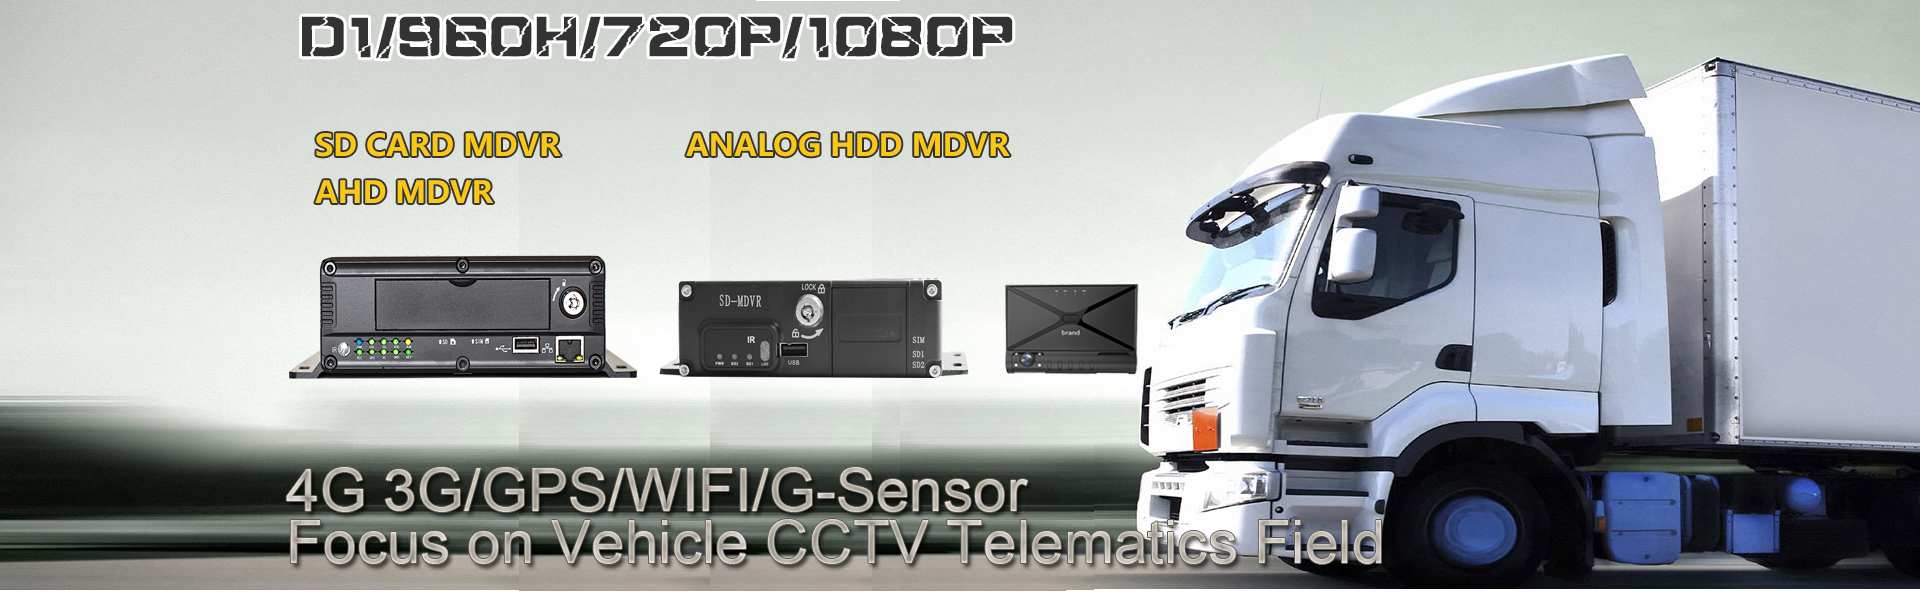 4G 3G GPS WIFI 1080P 720P Mobile MDVR system